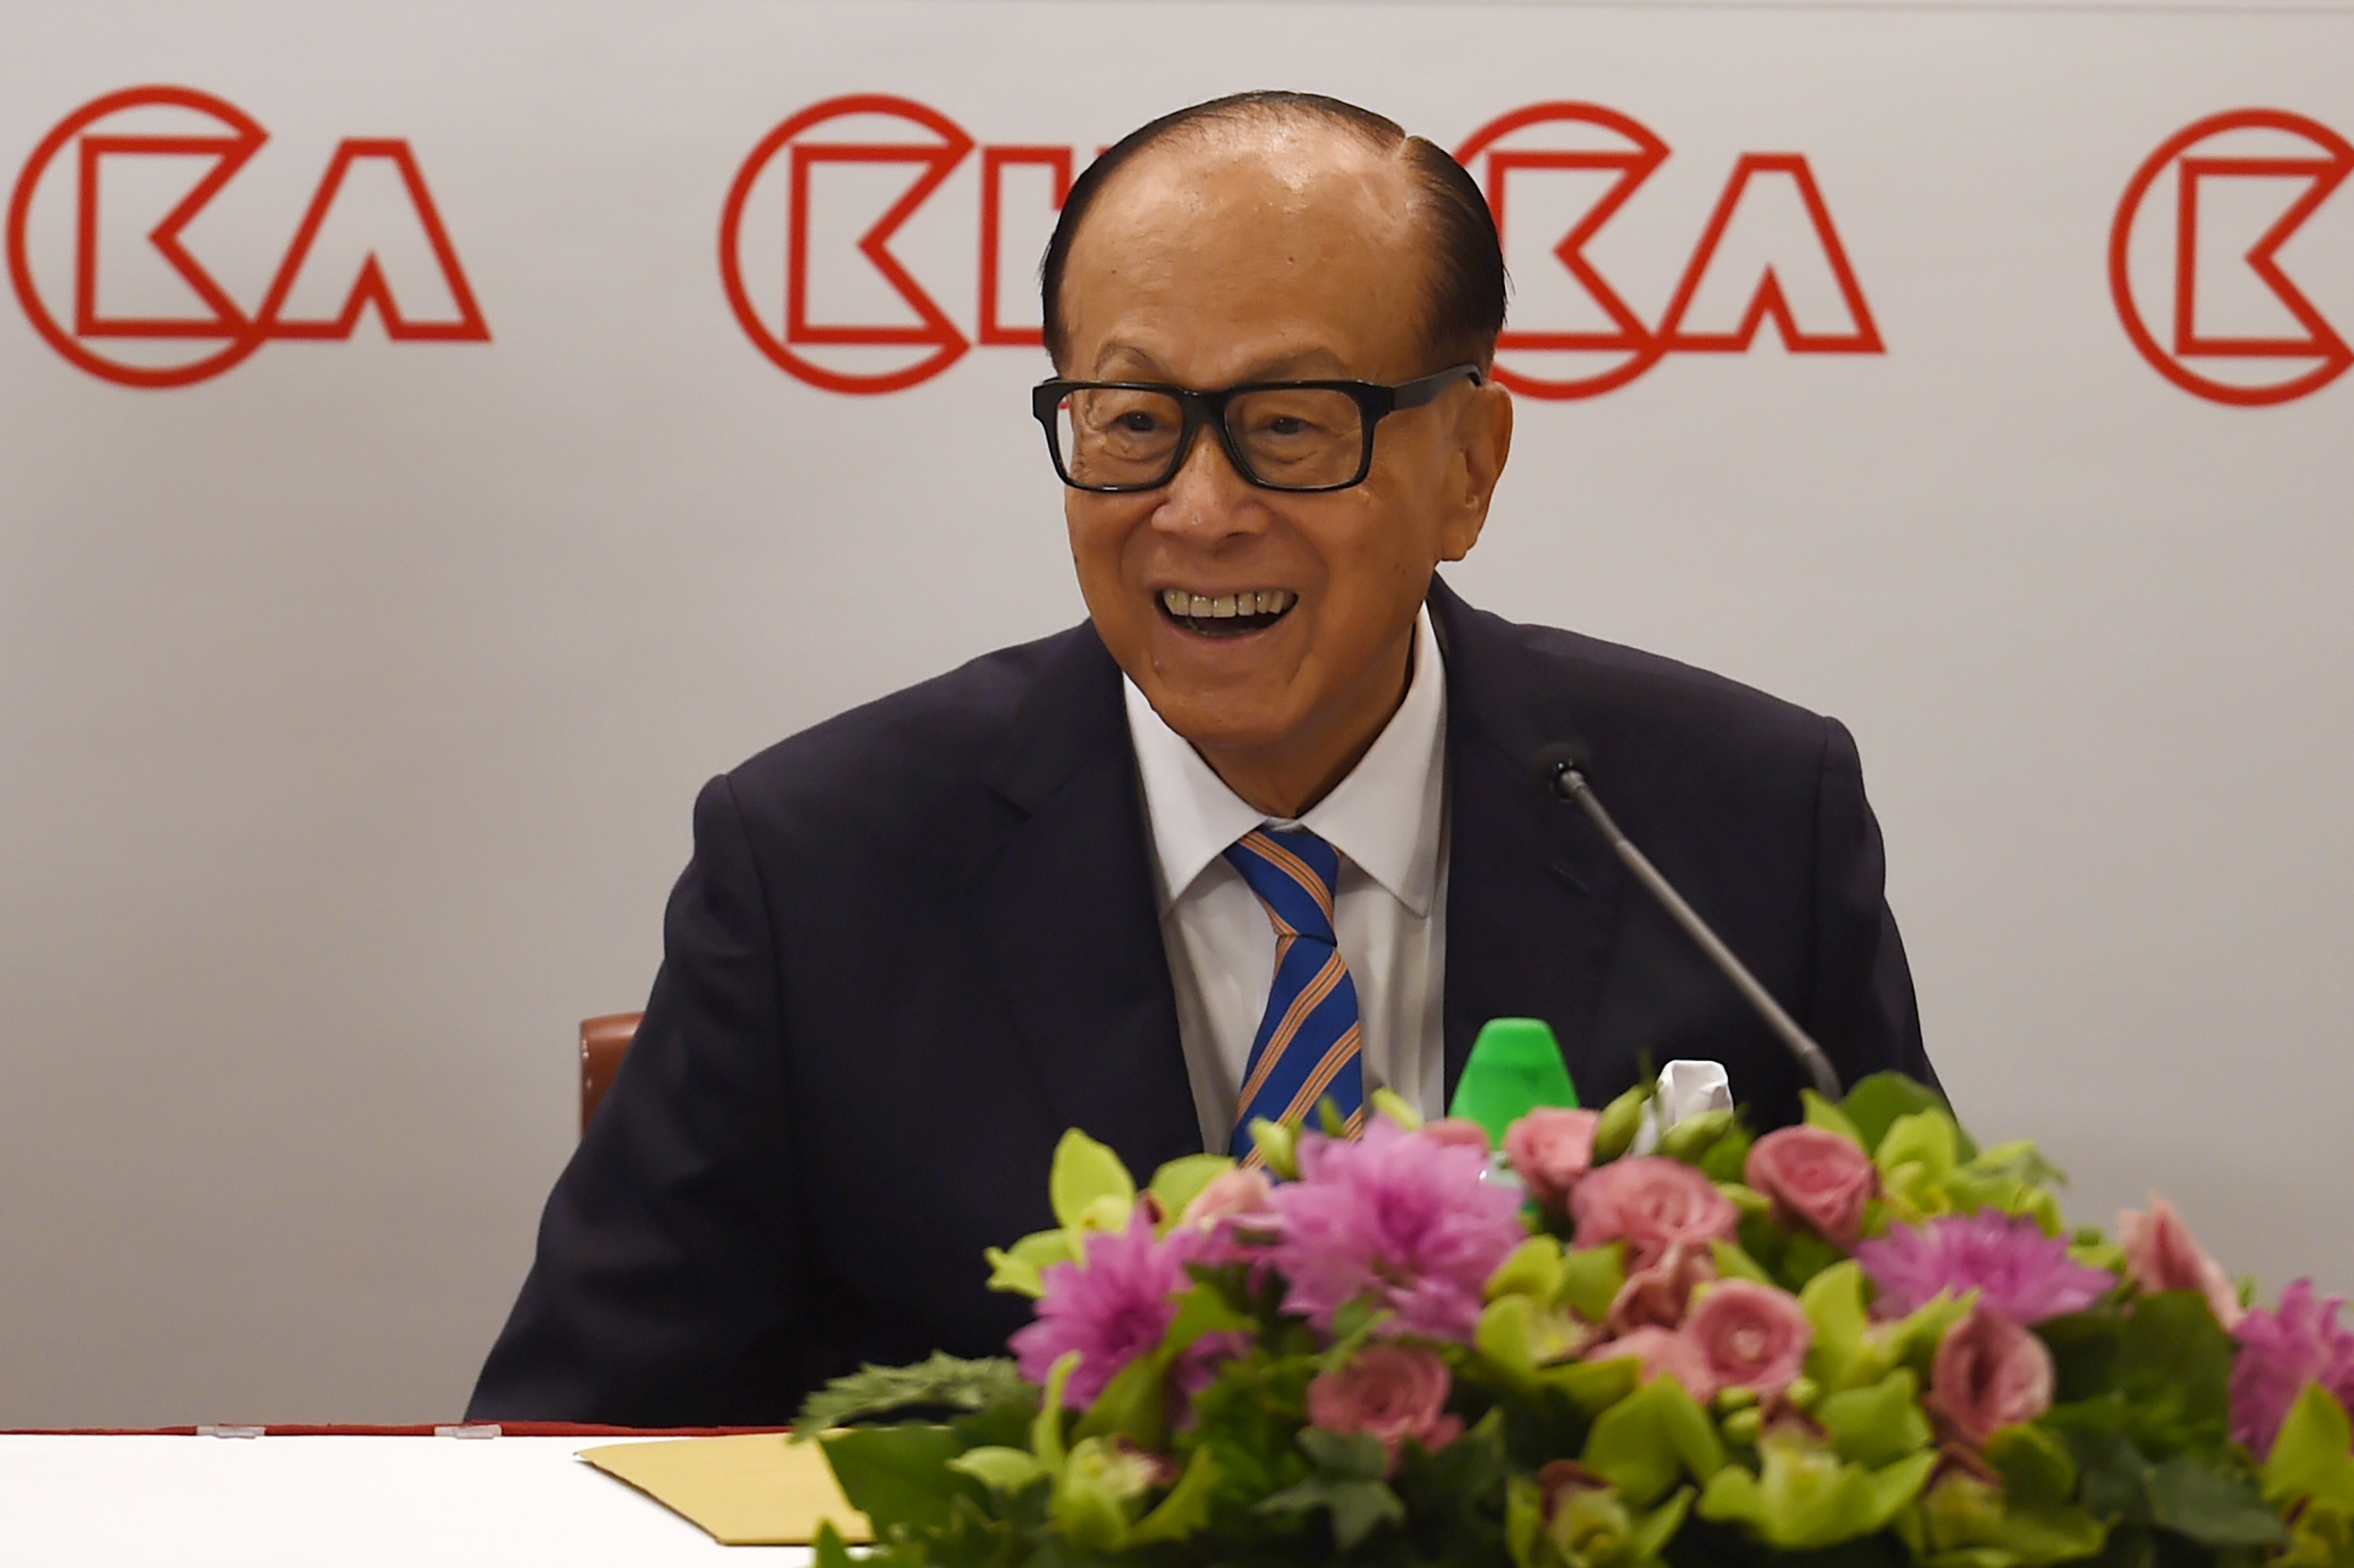 HONG KONG-ECONOMY-BUSINESS-HUTCHISON-POLITICS-CKI